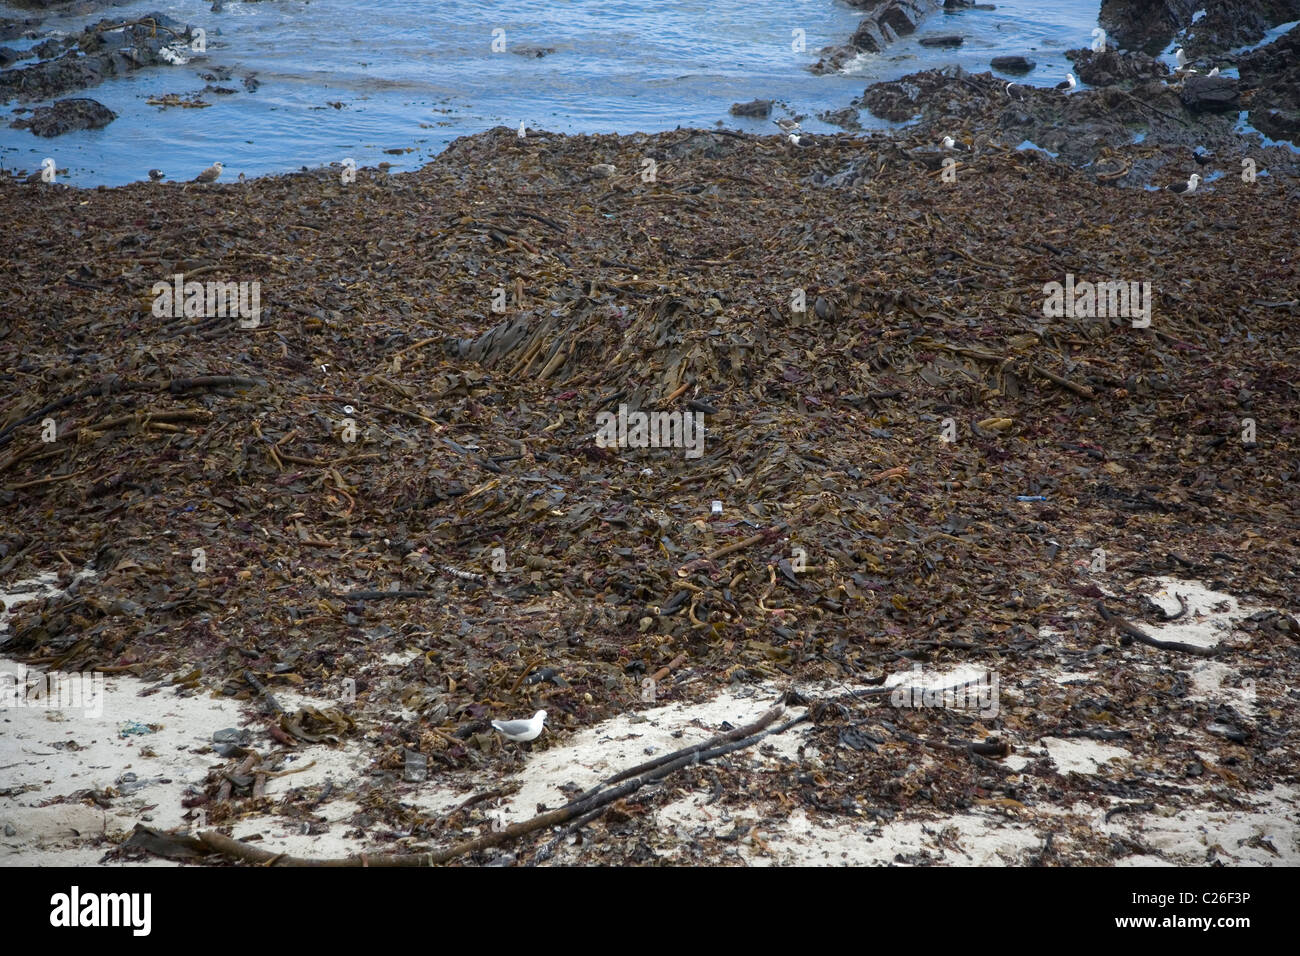 Seaweed washed up on beach in Cape Town Stock Photo